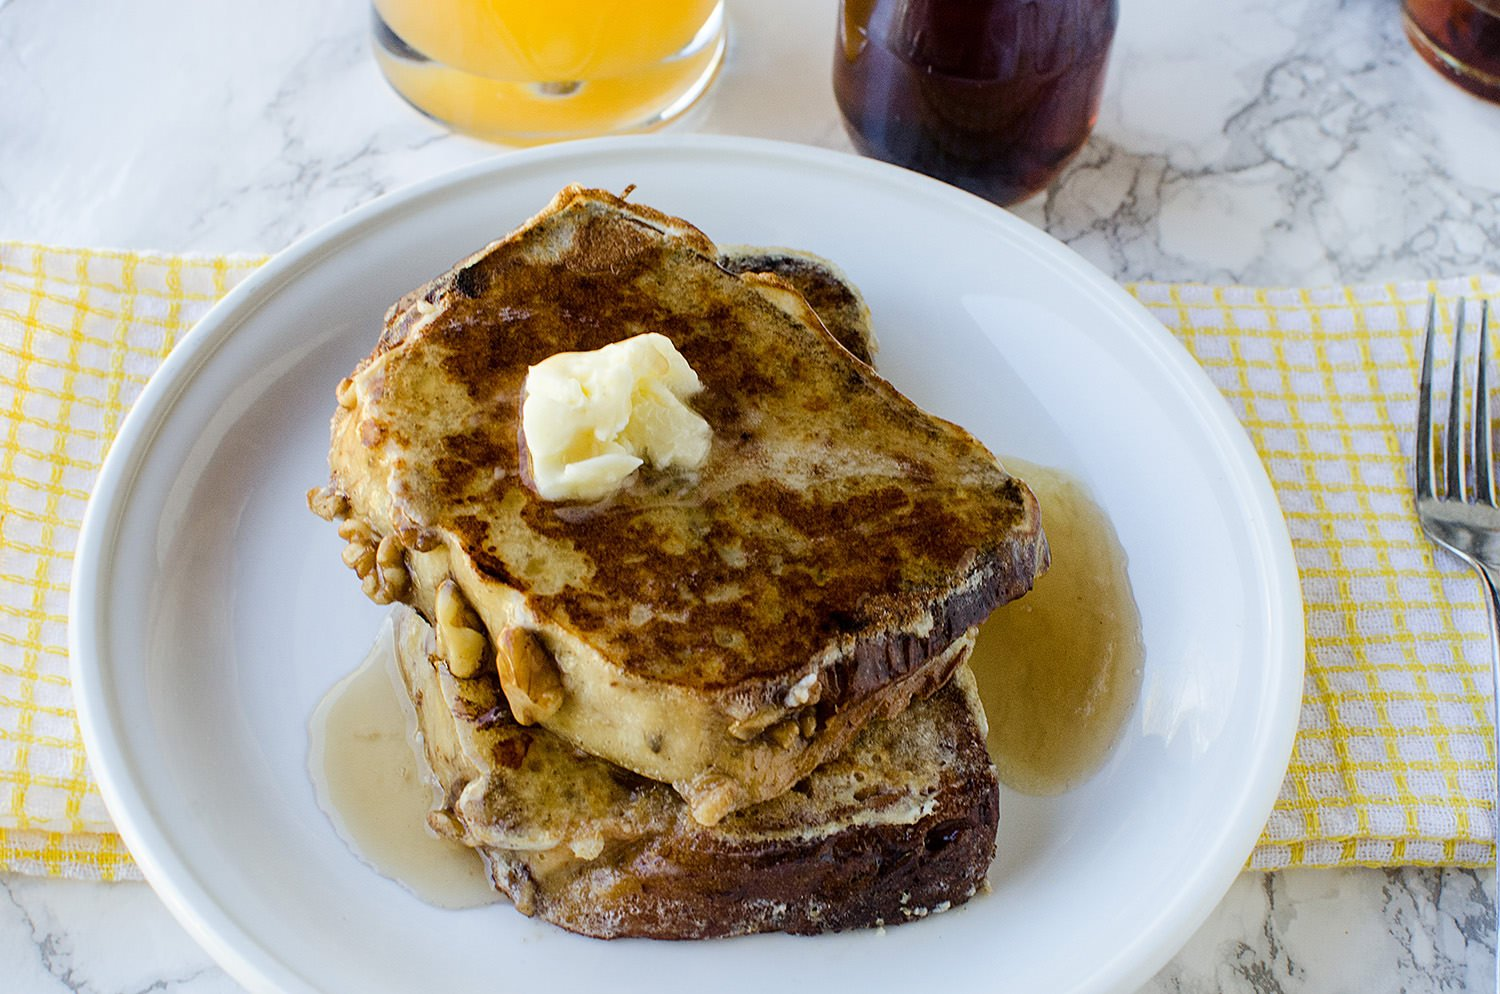 Breakfast about the only thing your kids will eat? Yup, us too. Lifestyle blogger Carly from Lipgloss & Crayons shares this banana bread french toast is delicious at any time of day!